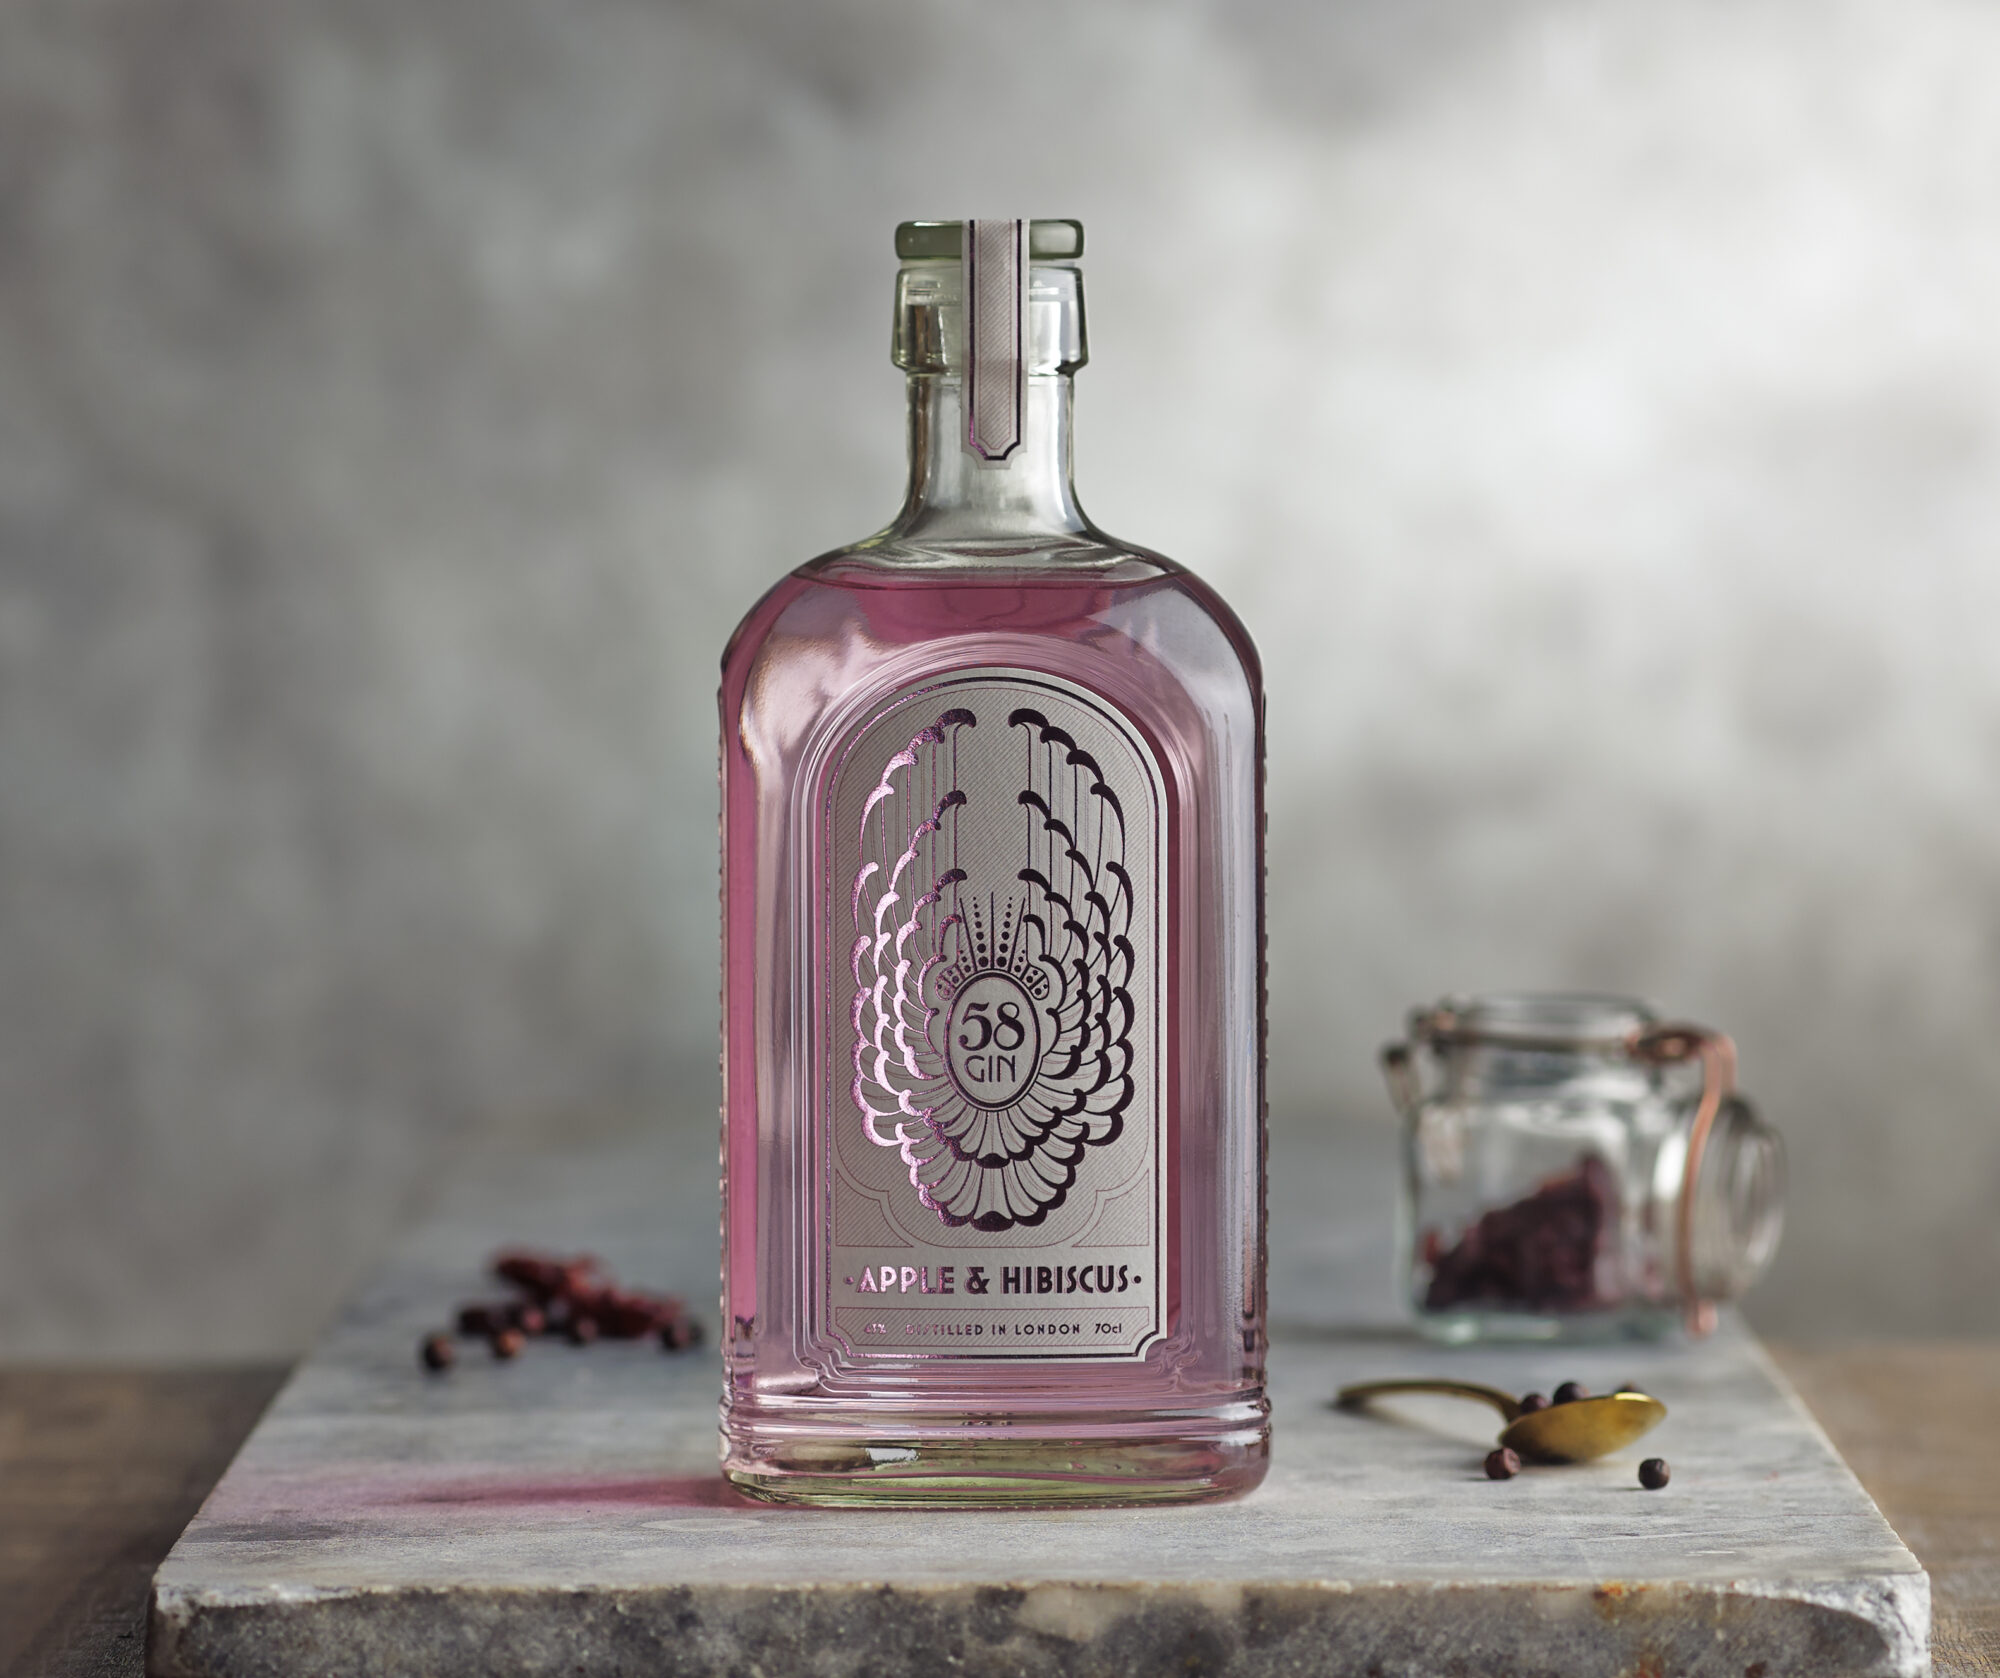 The Coolest Gins of 2020: 58 Gin - Apple and Hibiscus